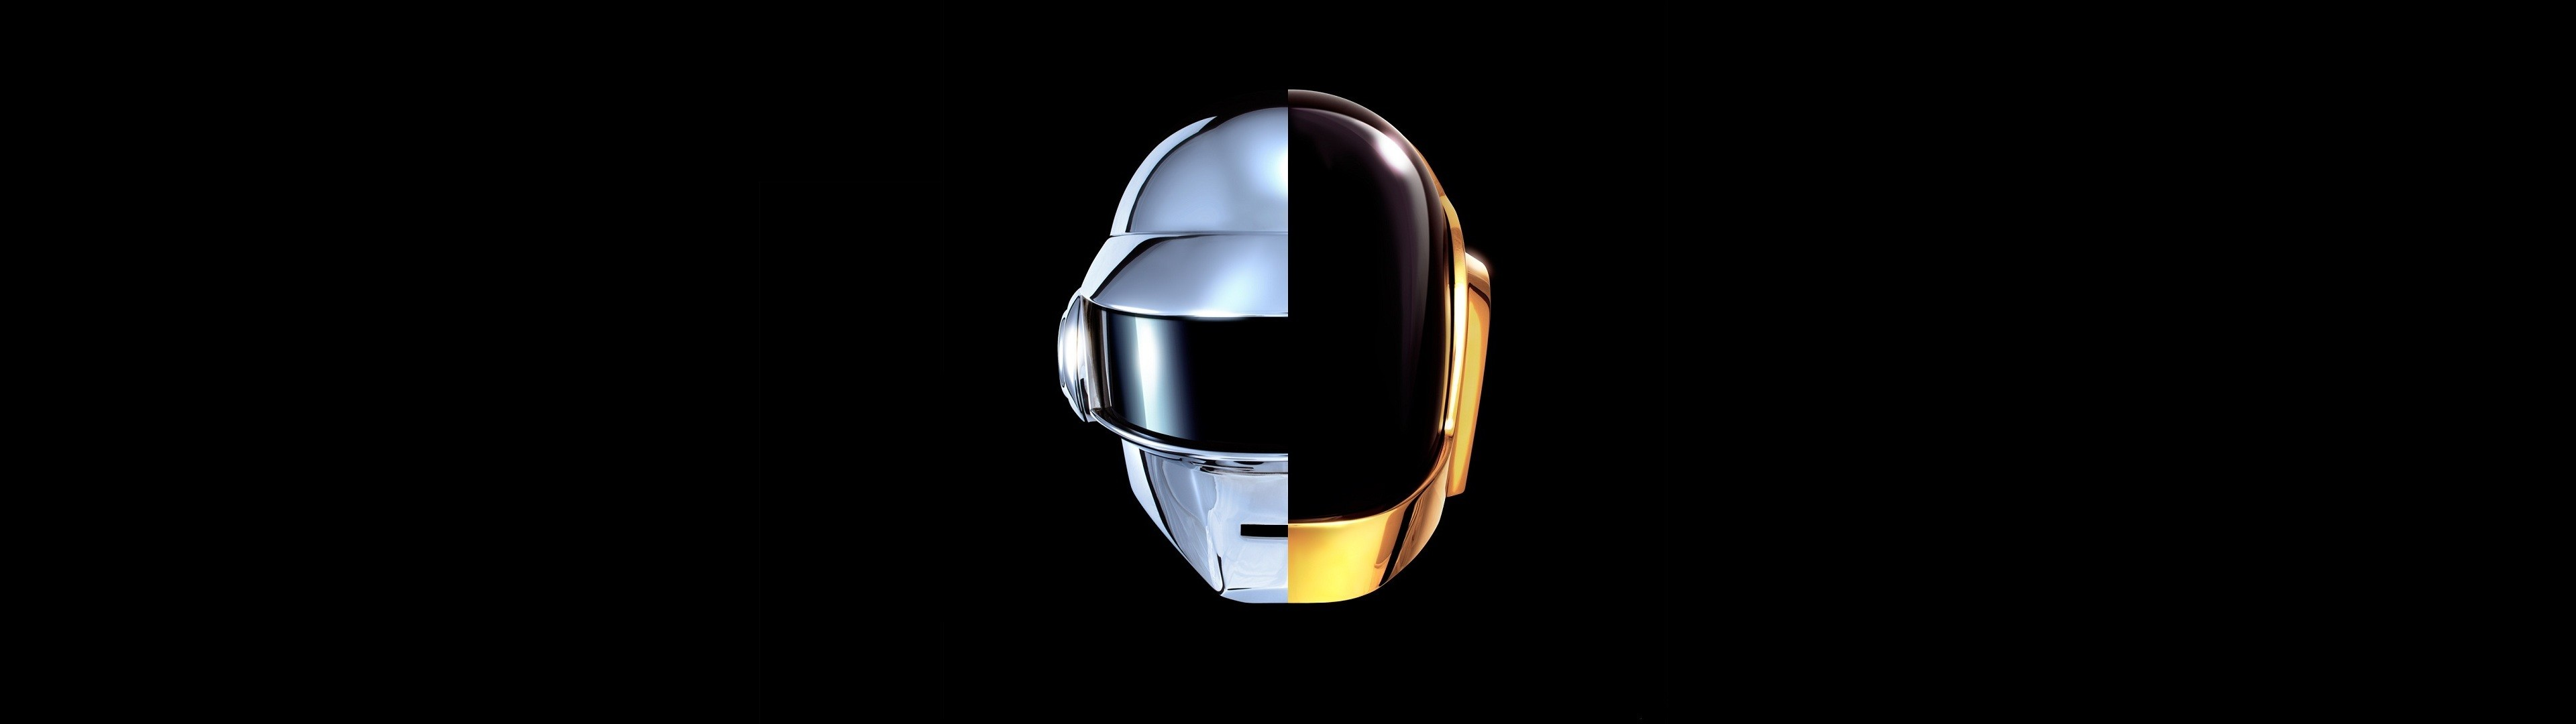 3d Wallpaper 800x1280 Daft Punk Hd Music 4k Wallpapers Images Backgrounds